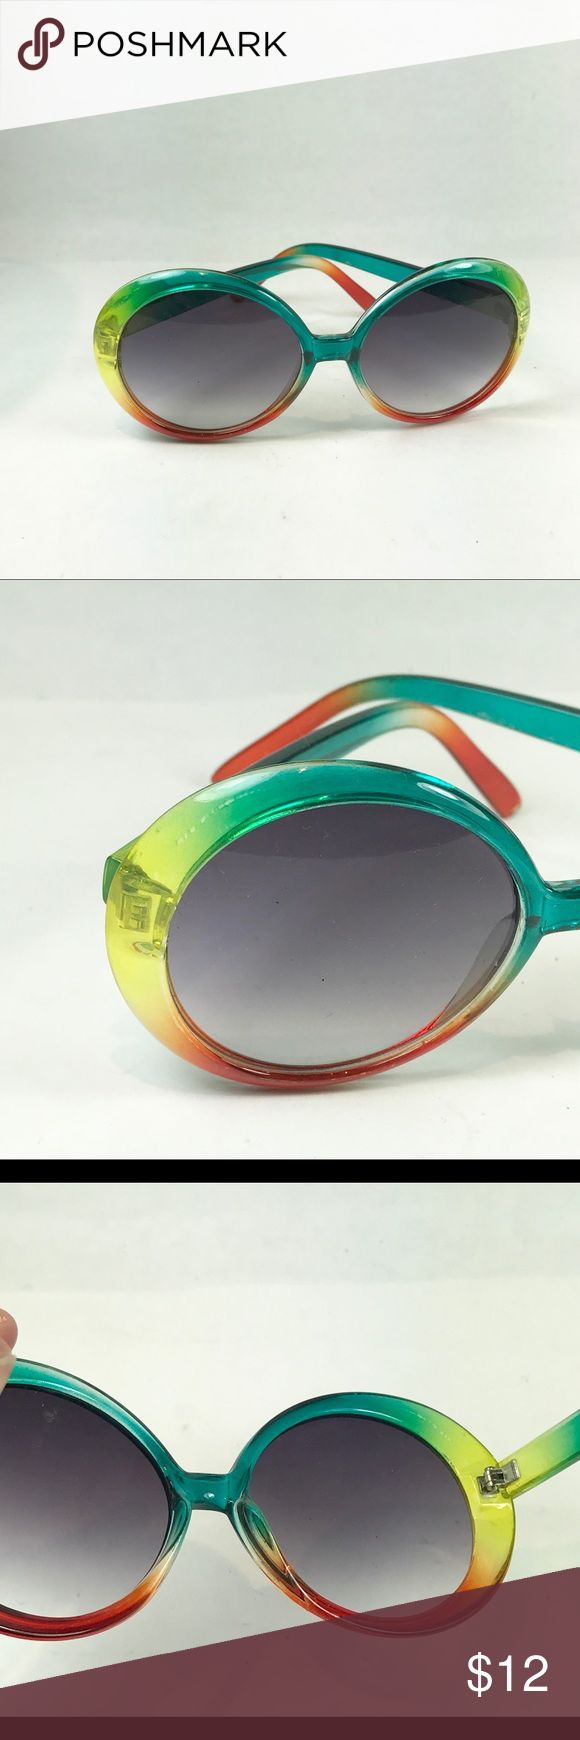 Rainbow sunglasses Rainbow sunglasses Fun funky and colorful One side is loose but still wearable Not sure if vintage No name or brand listed From pet and smoke free location Good for display none Accessories Sunglasses